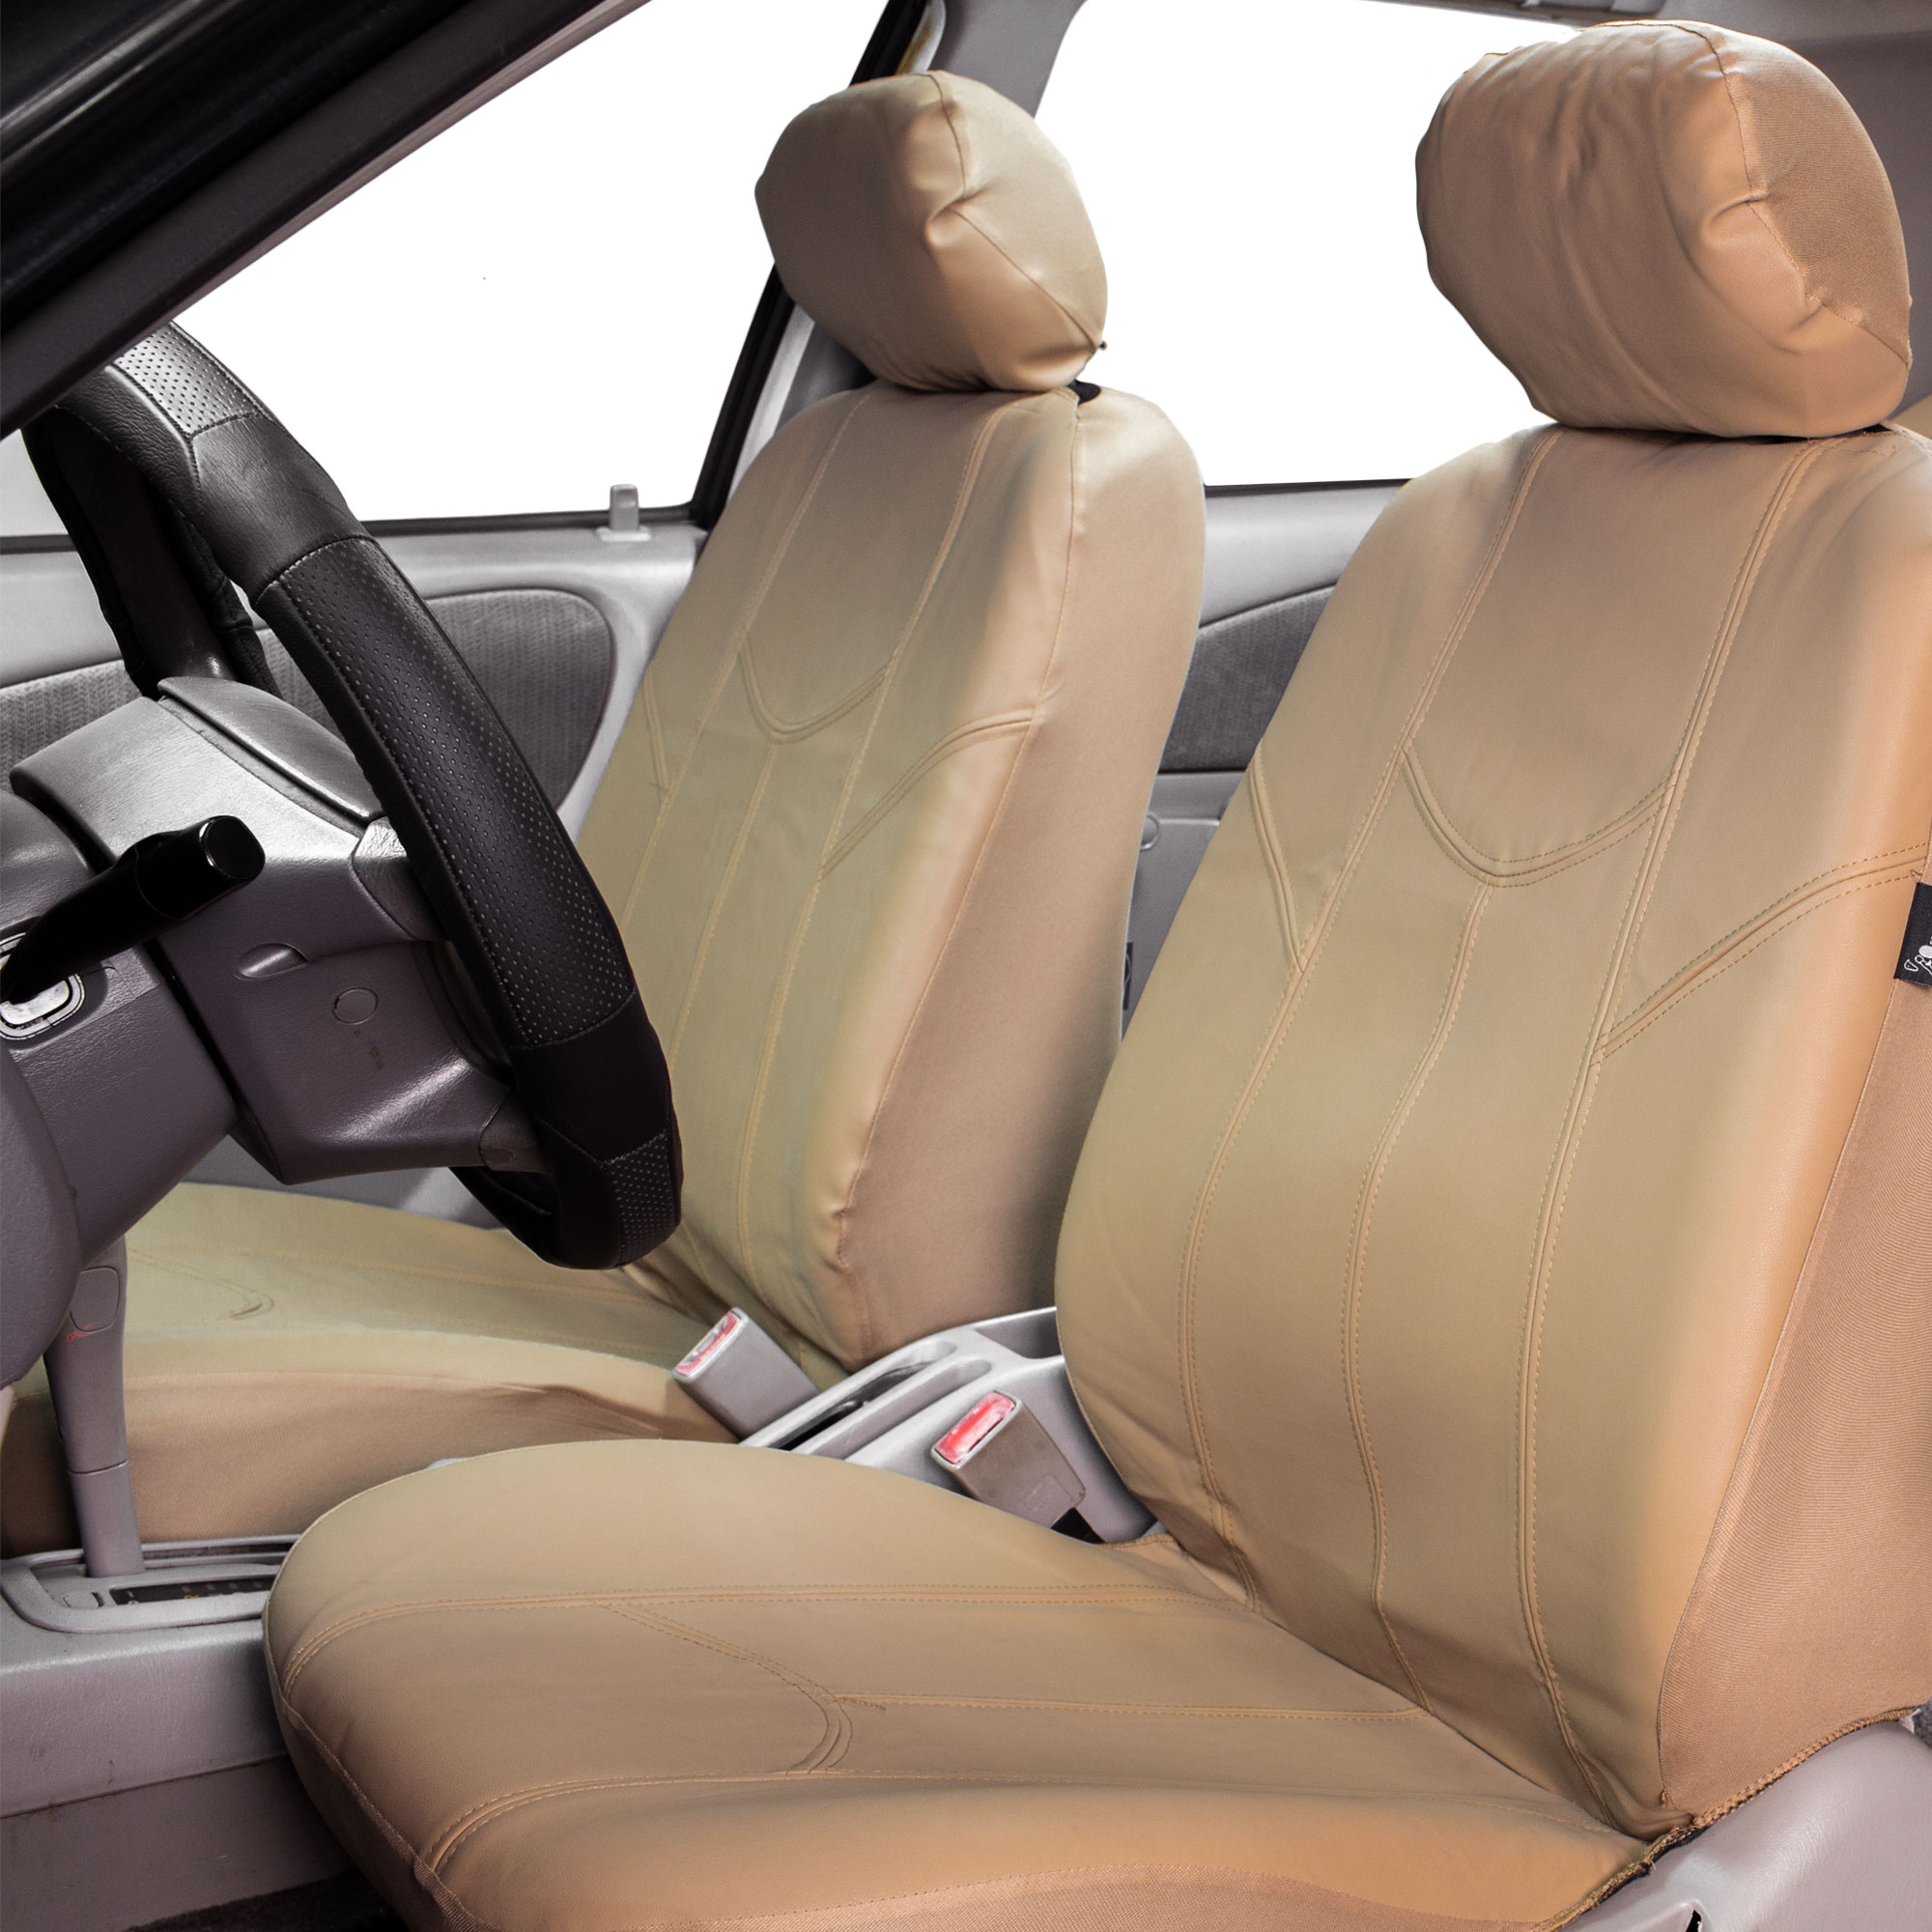 Faux leather car seat covers luxury set tan free gift - Car seat covers for tan interior ...